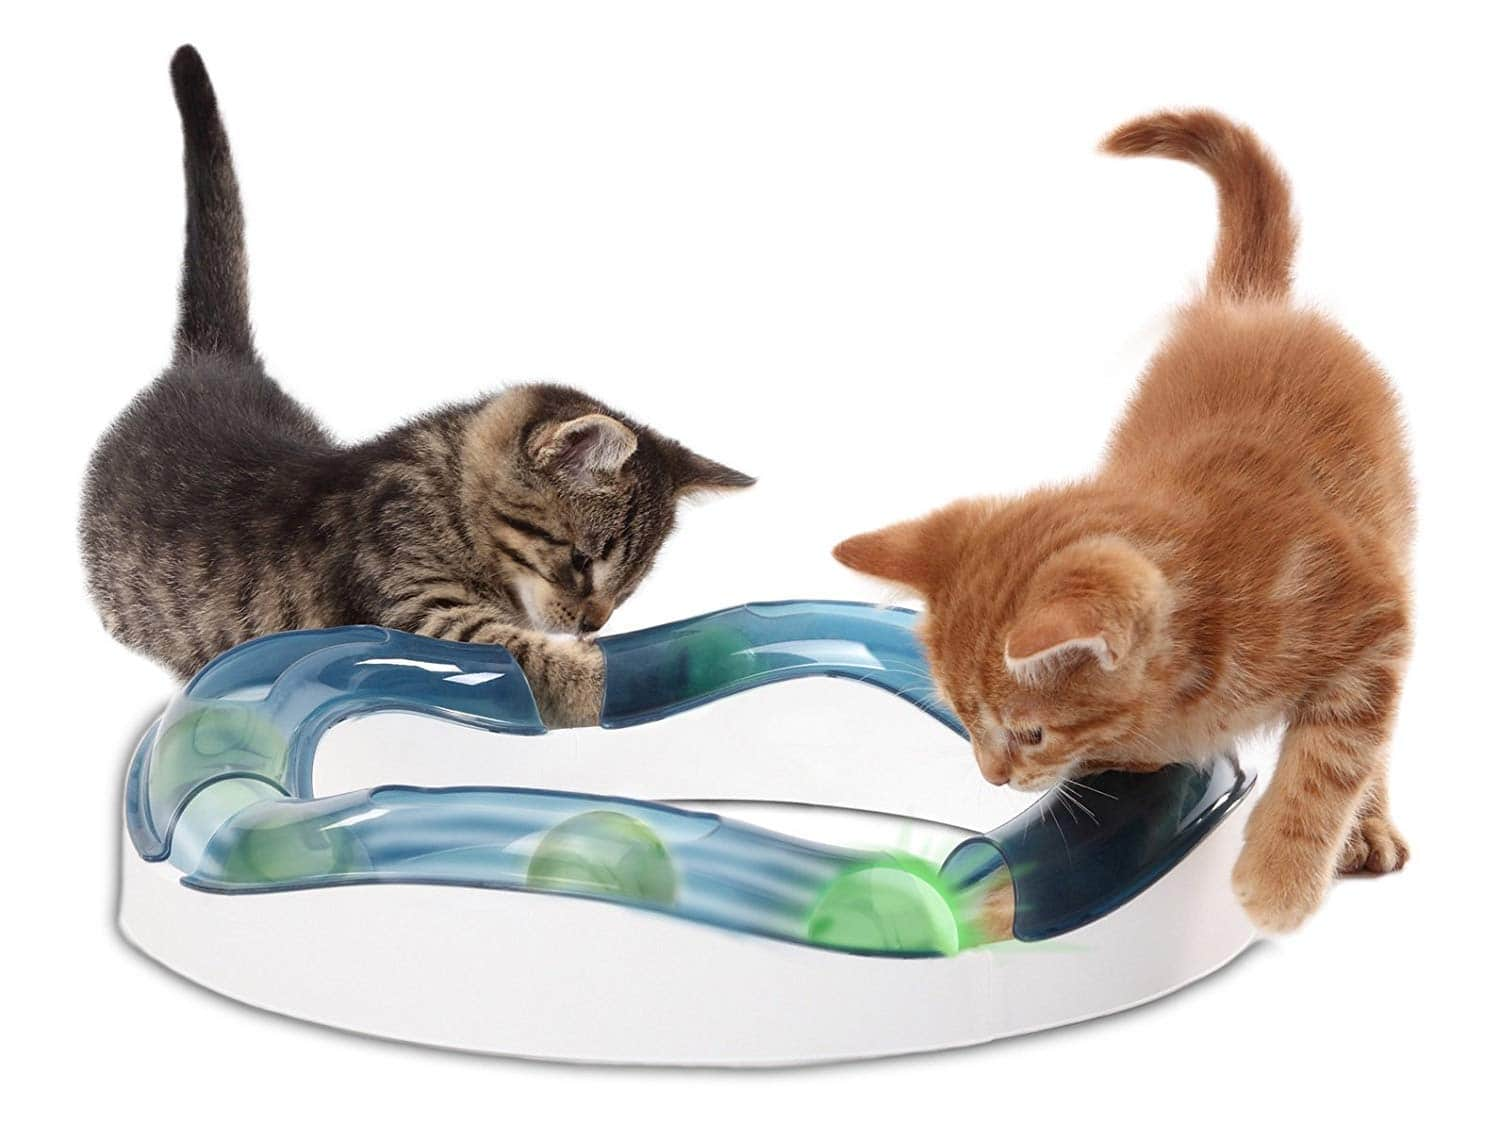 Cat Toys & Supplies: Fat Cat Kitty Hoots 15in Catnip Tail Chaser $2.42, Catit Design Senses Speed Circuit $5.17, Petmate Jumbo Hooded Litter Pan $13.65 & Many More - FS w/ Prime